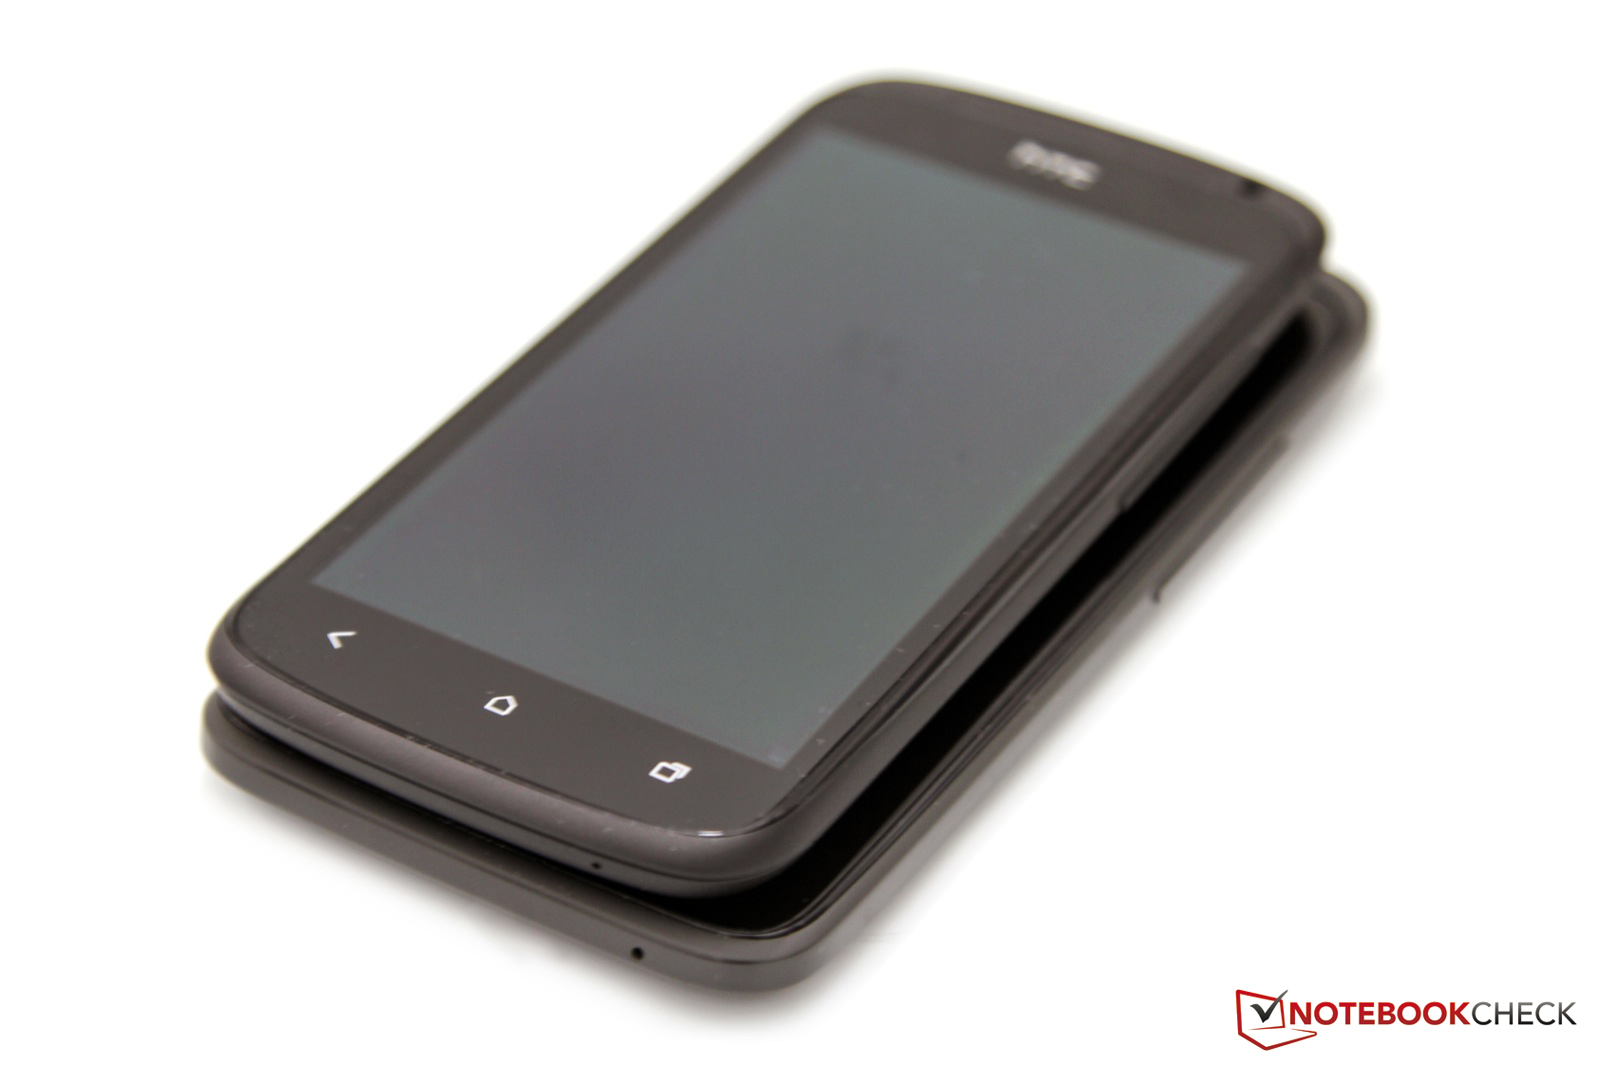 Test HTC One S vs. HTC One X (Tegra 3) Smartphone - Notebookcheck ...